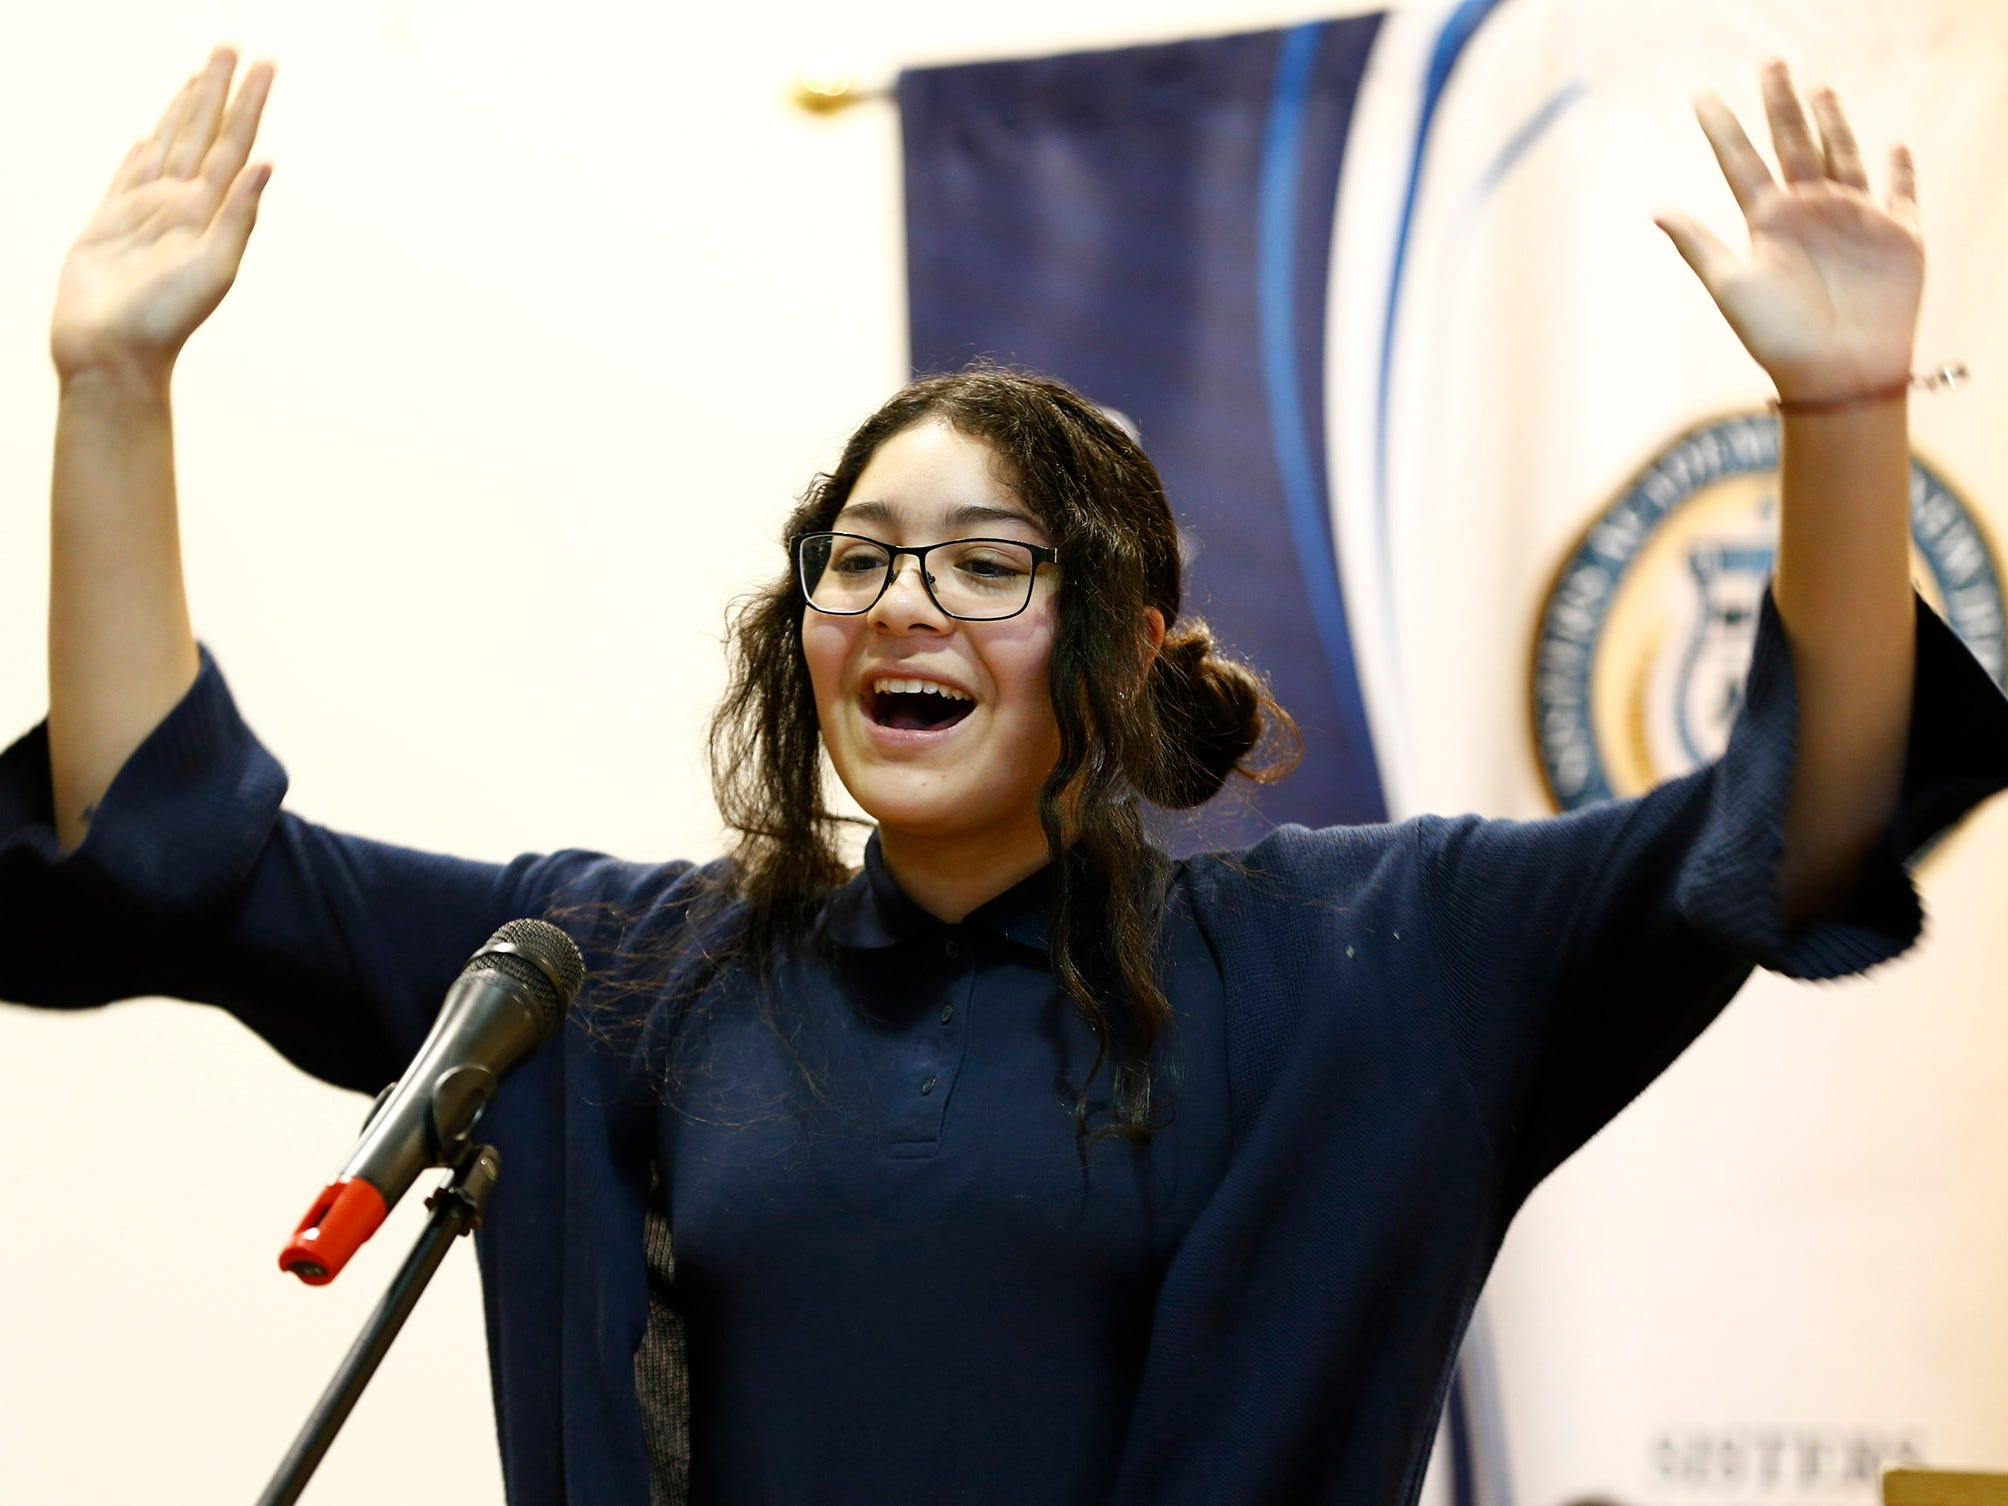 Sisters Academy 6th grader Geraldine Muniz performs during the 8th Annual Miller Speaking Contest at the Asbury Park school Thursday, March 14, 2019.